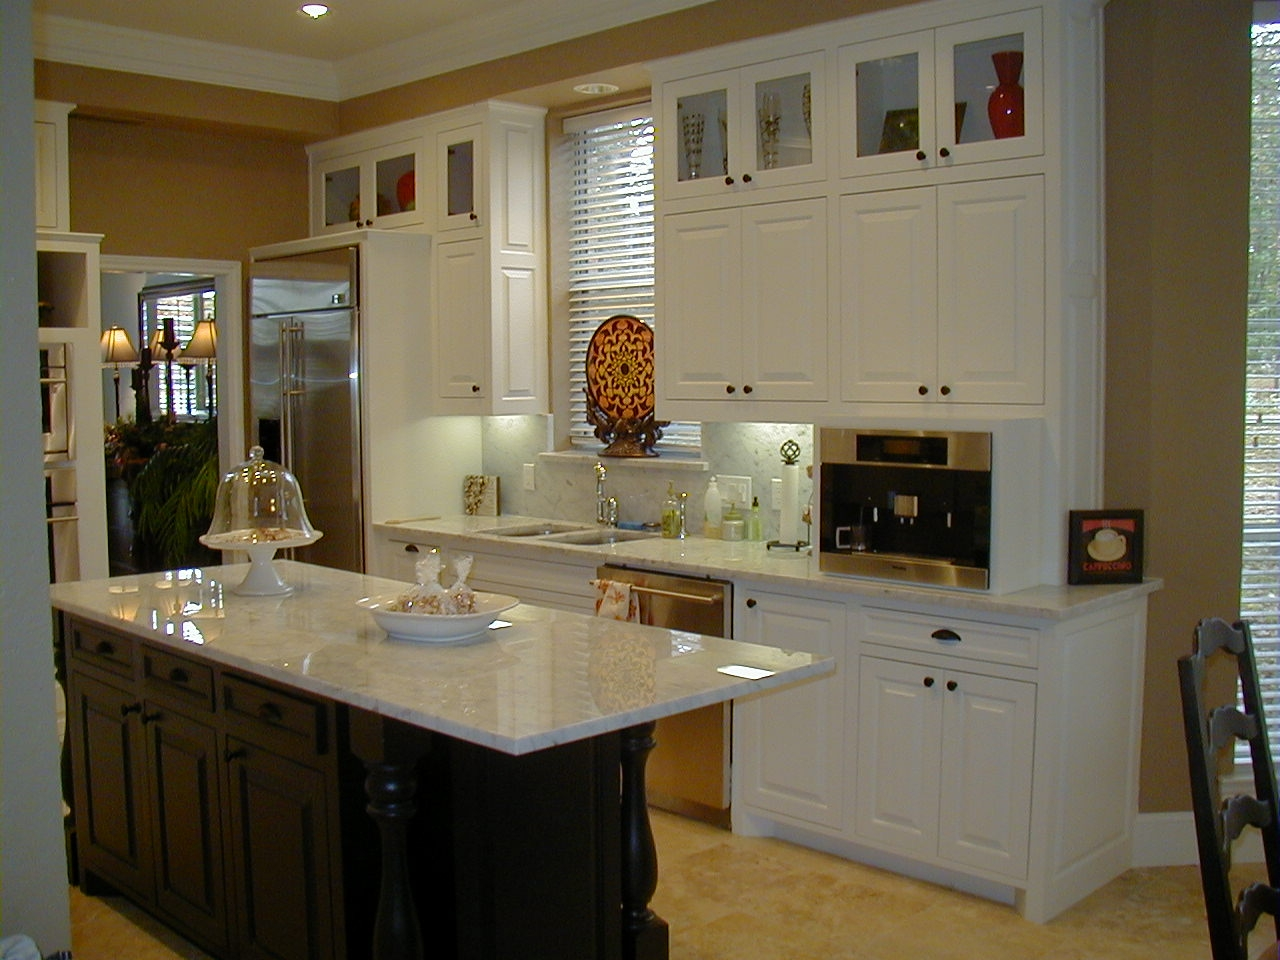 Custom Kitchen Cabinets Staten Island1280 X 960